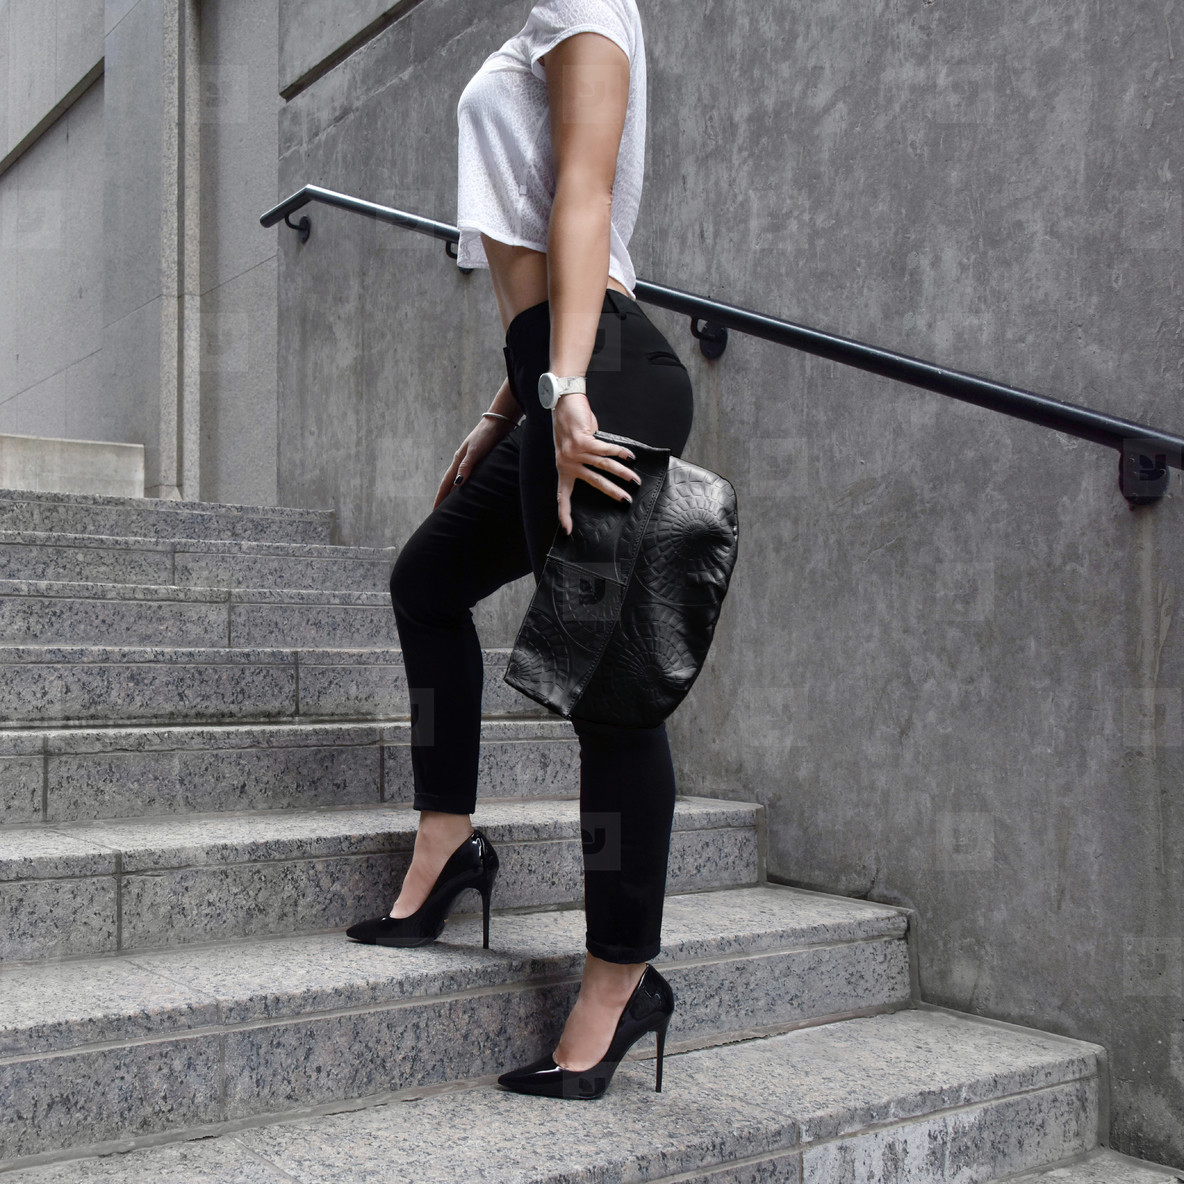 Model on Stairs